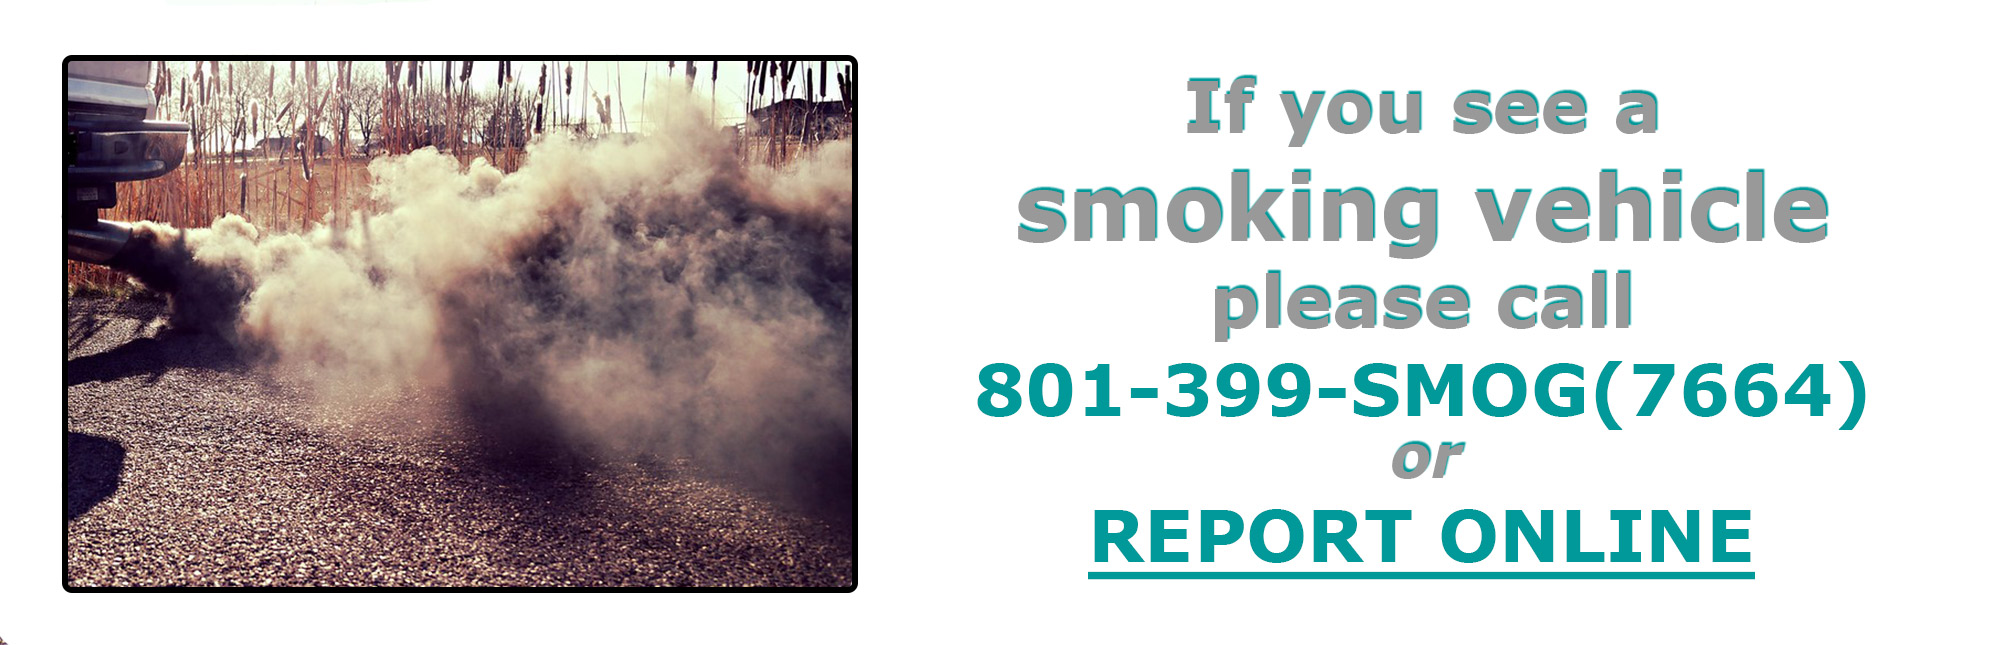 report_smoking_vehicle